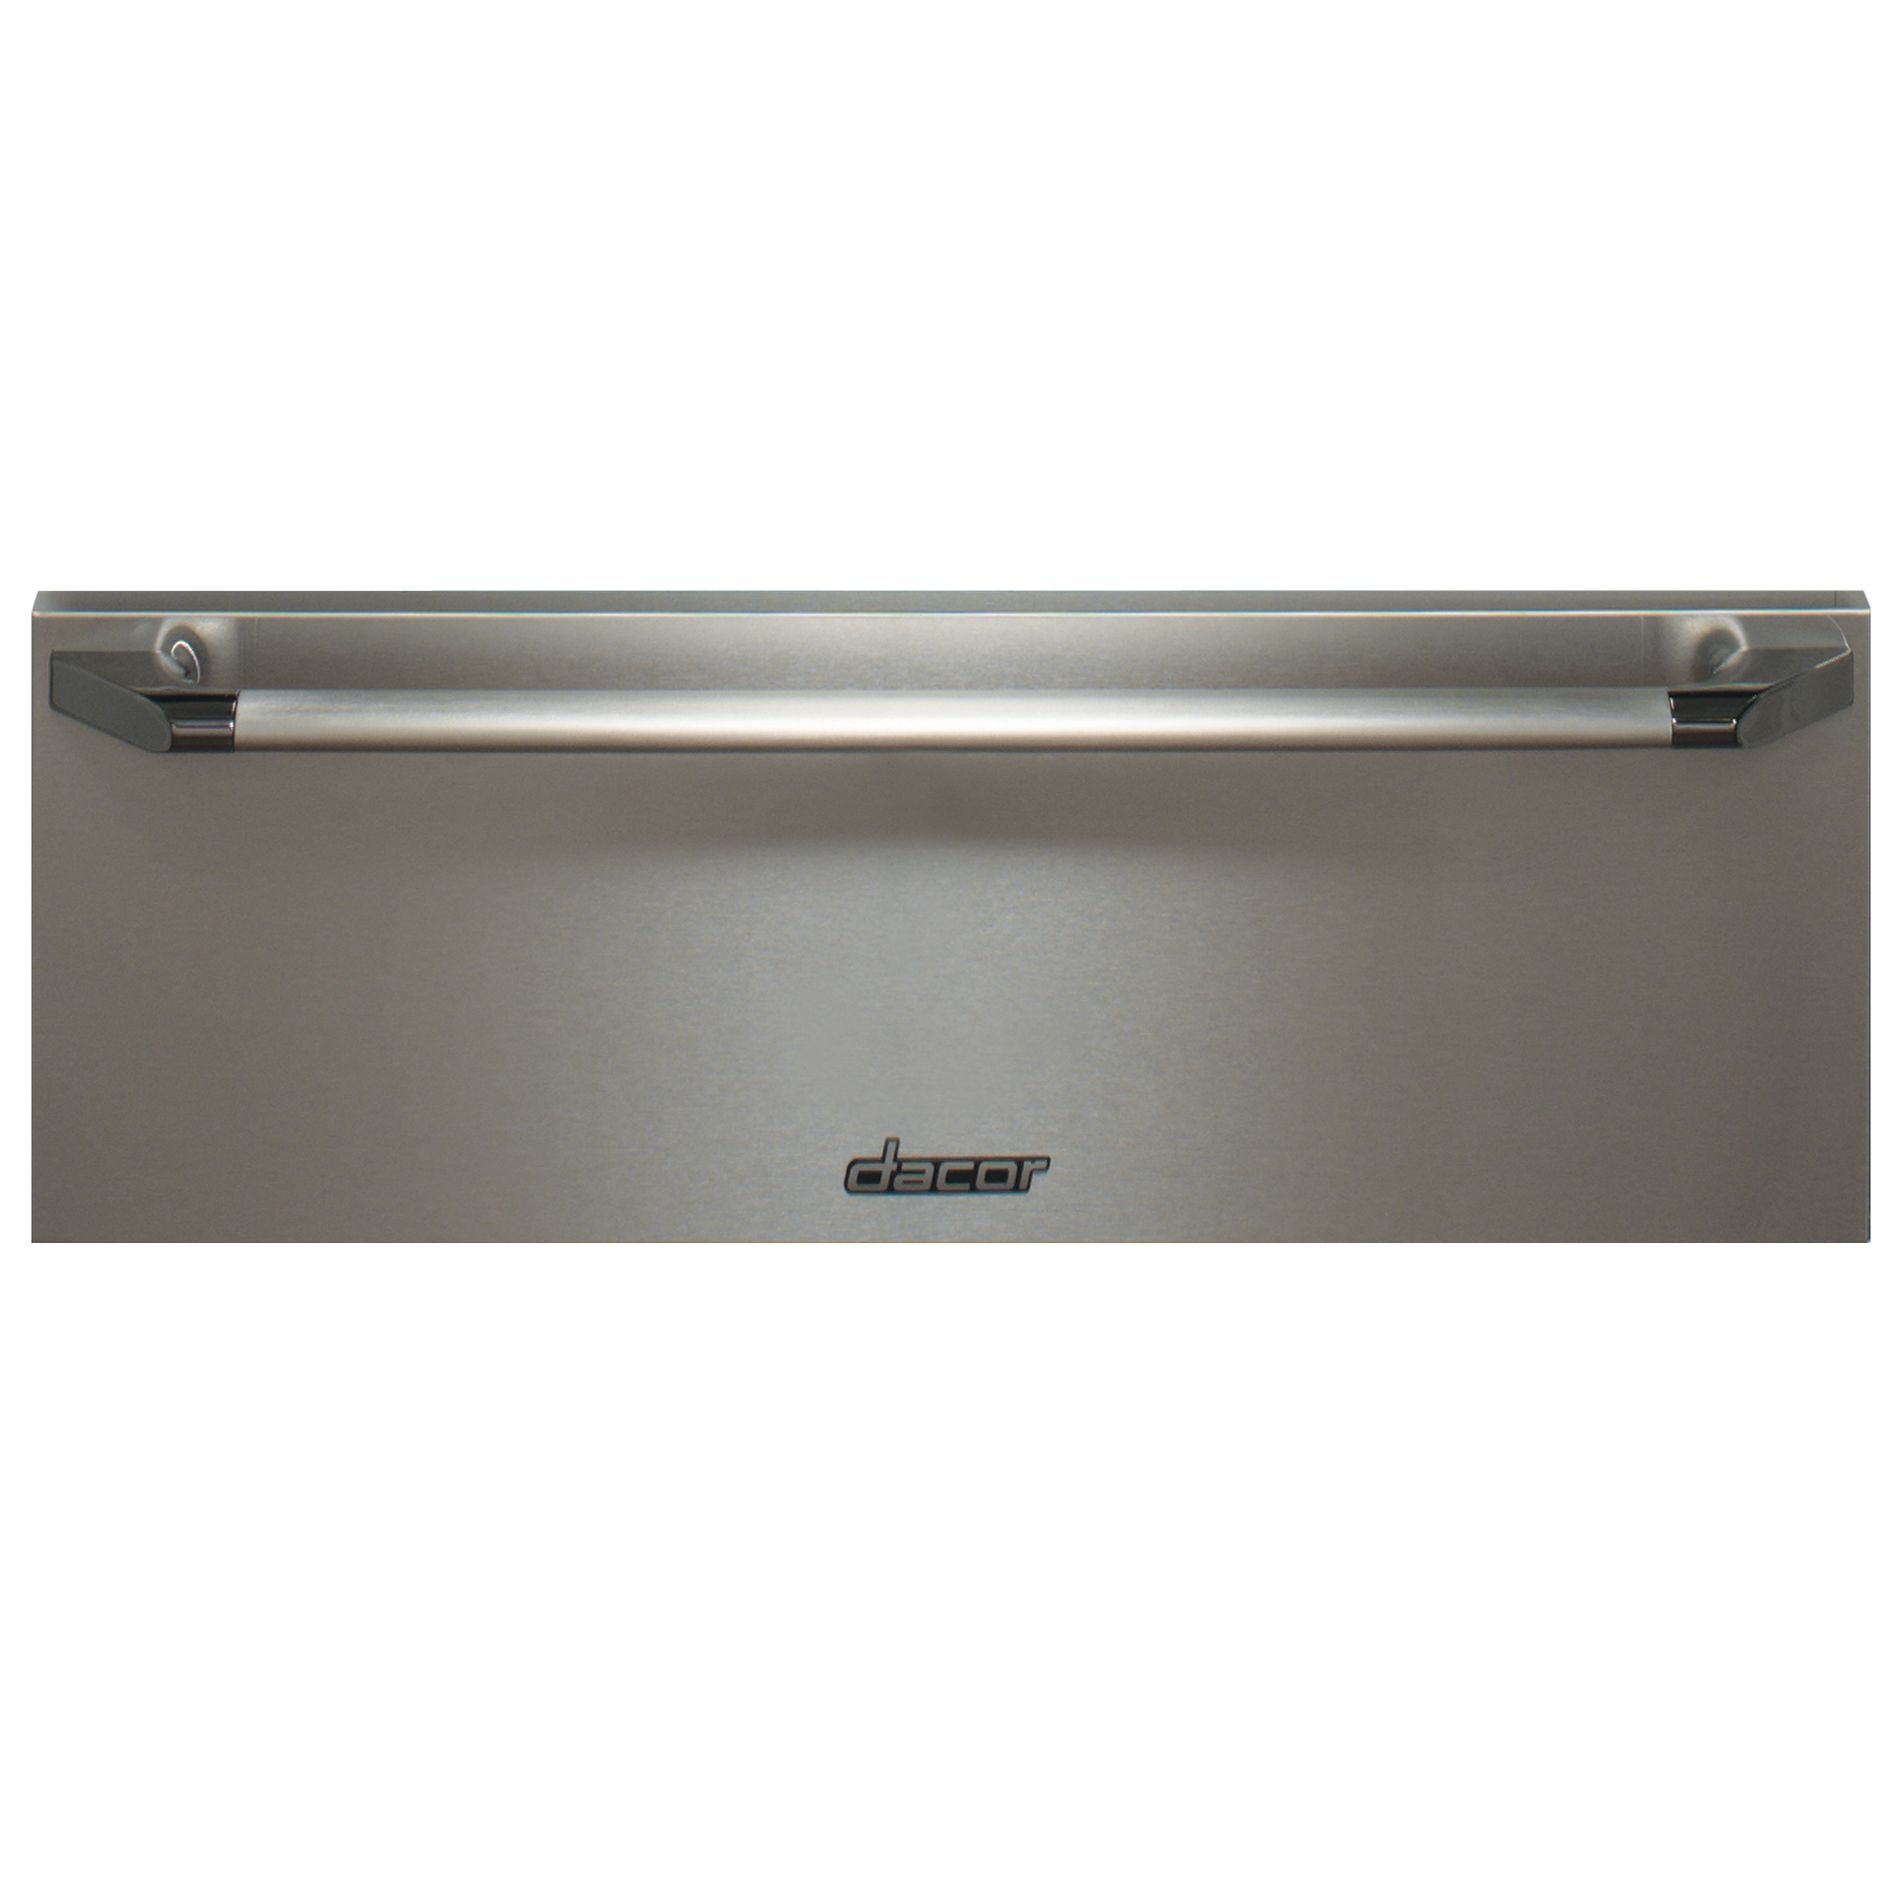 Dacor  Renaissance 24''. Epicure Warming Drawer